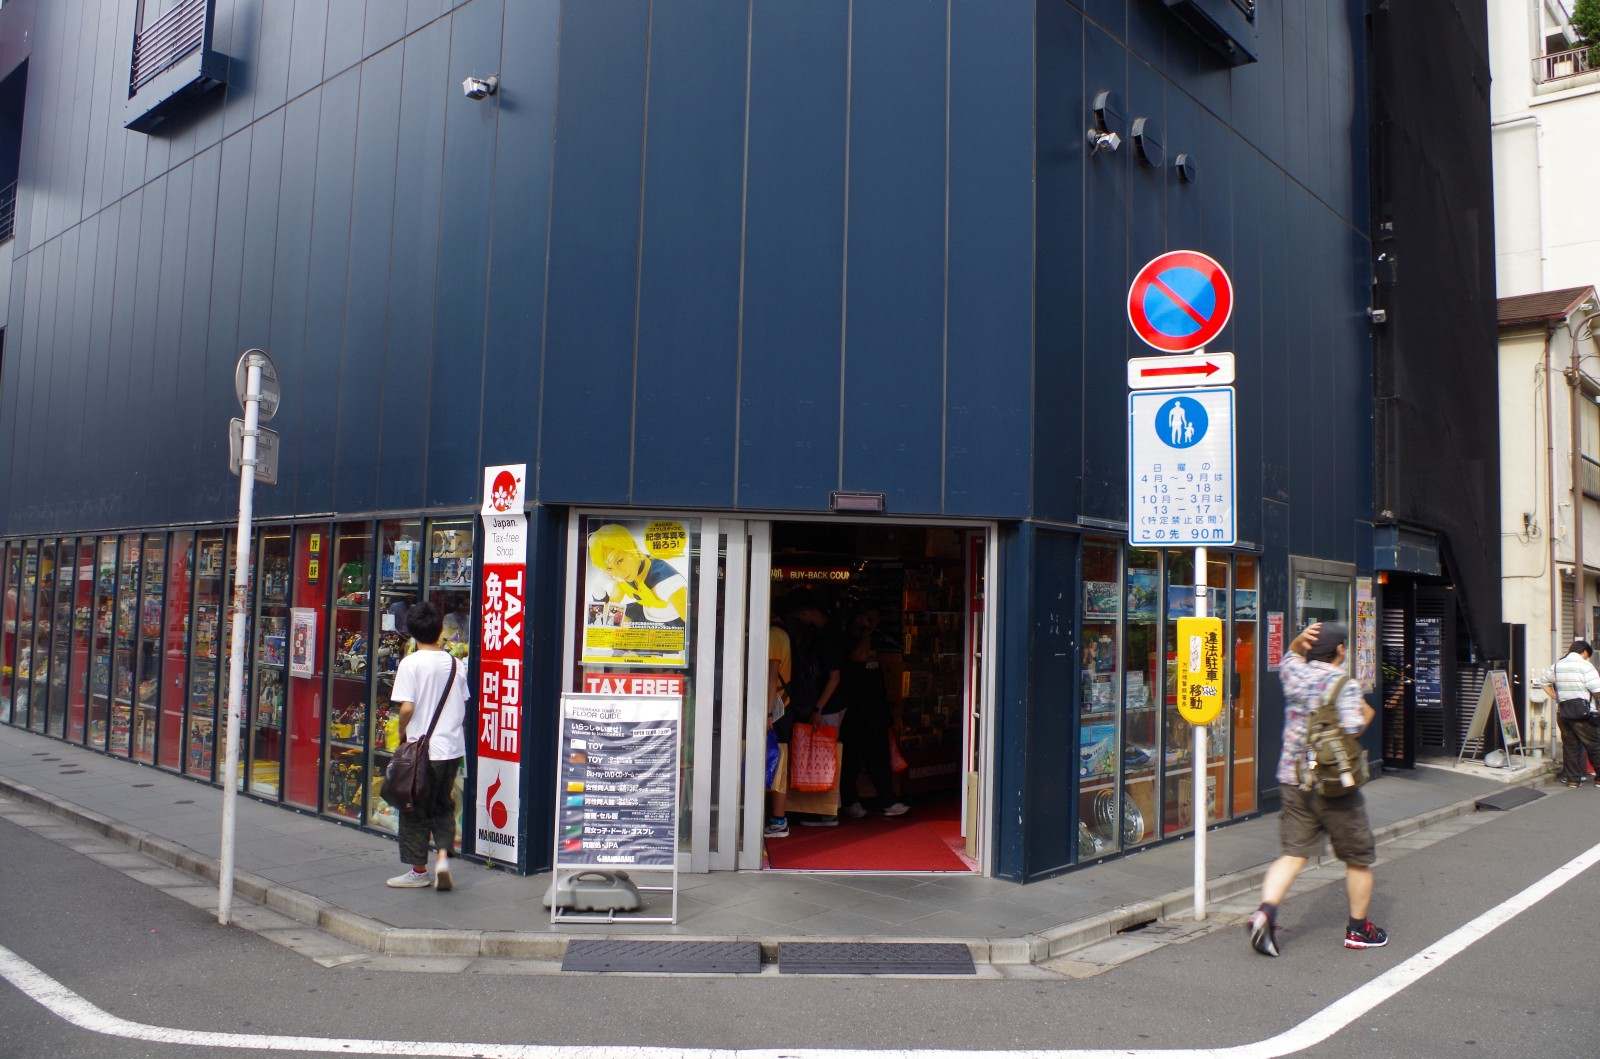 In front of Mandarake, Akihabara branch